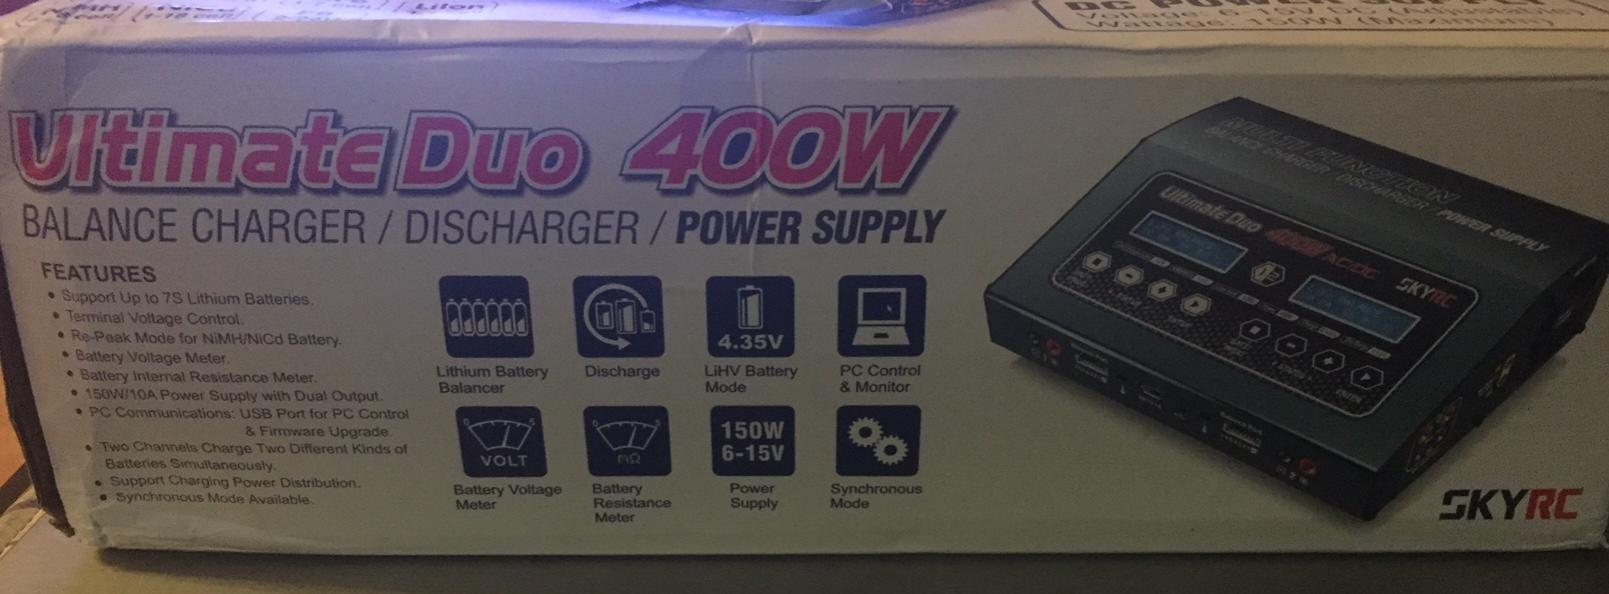 SKYRC Ultimate Duo 400W AC//DC Charger with Power Distribution